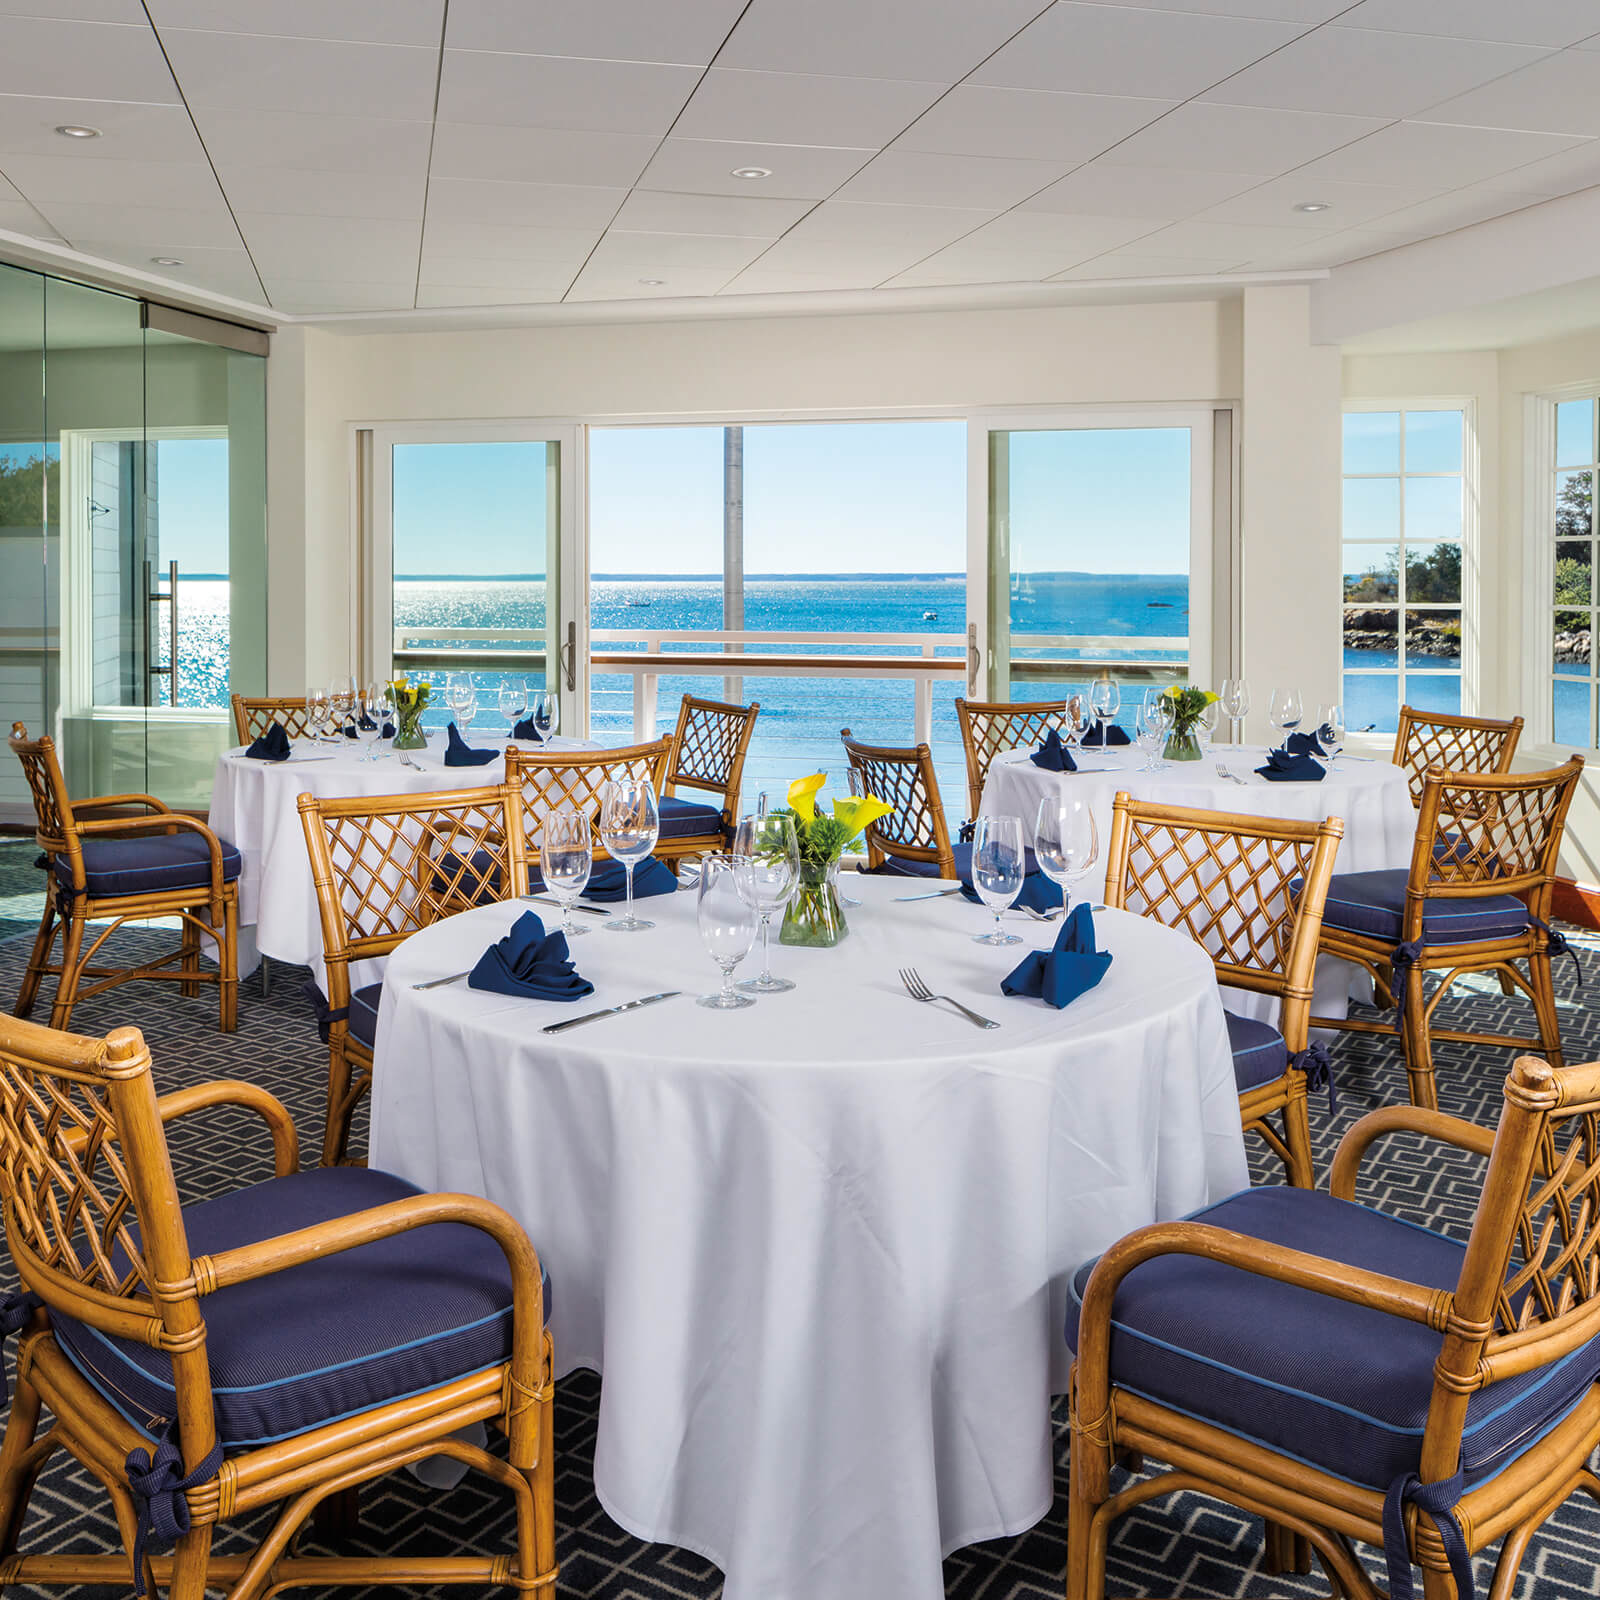 Dinning room of Traditional style commercial beach side building with Marvin Elevate Sliding French Door and Elevate Casement Windows